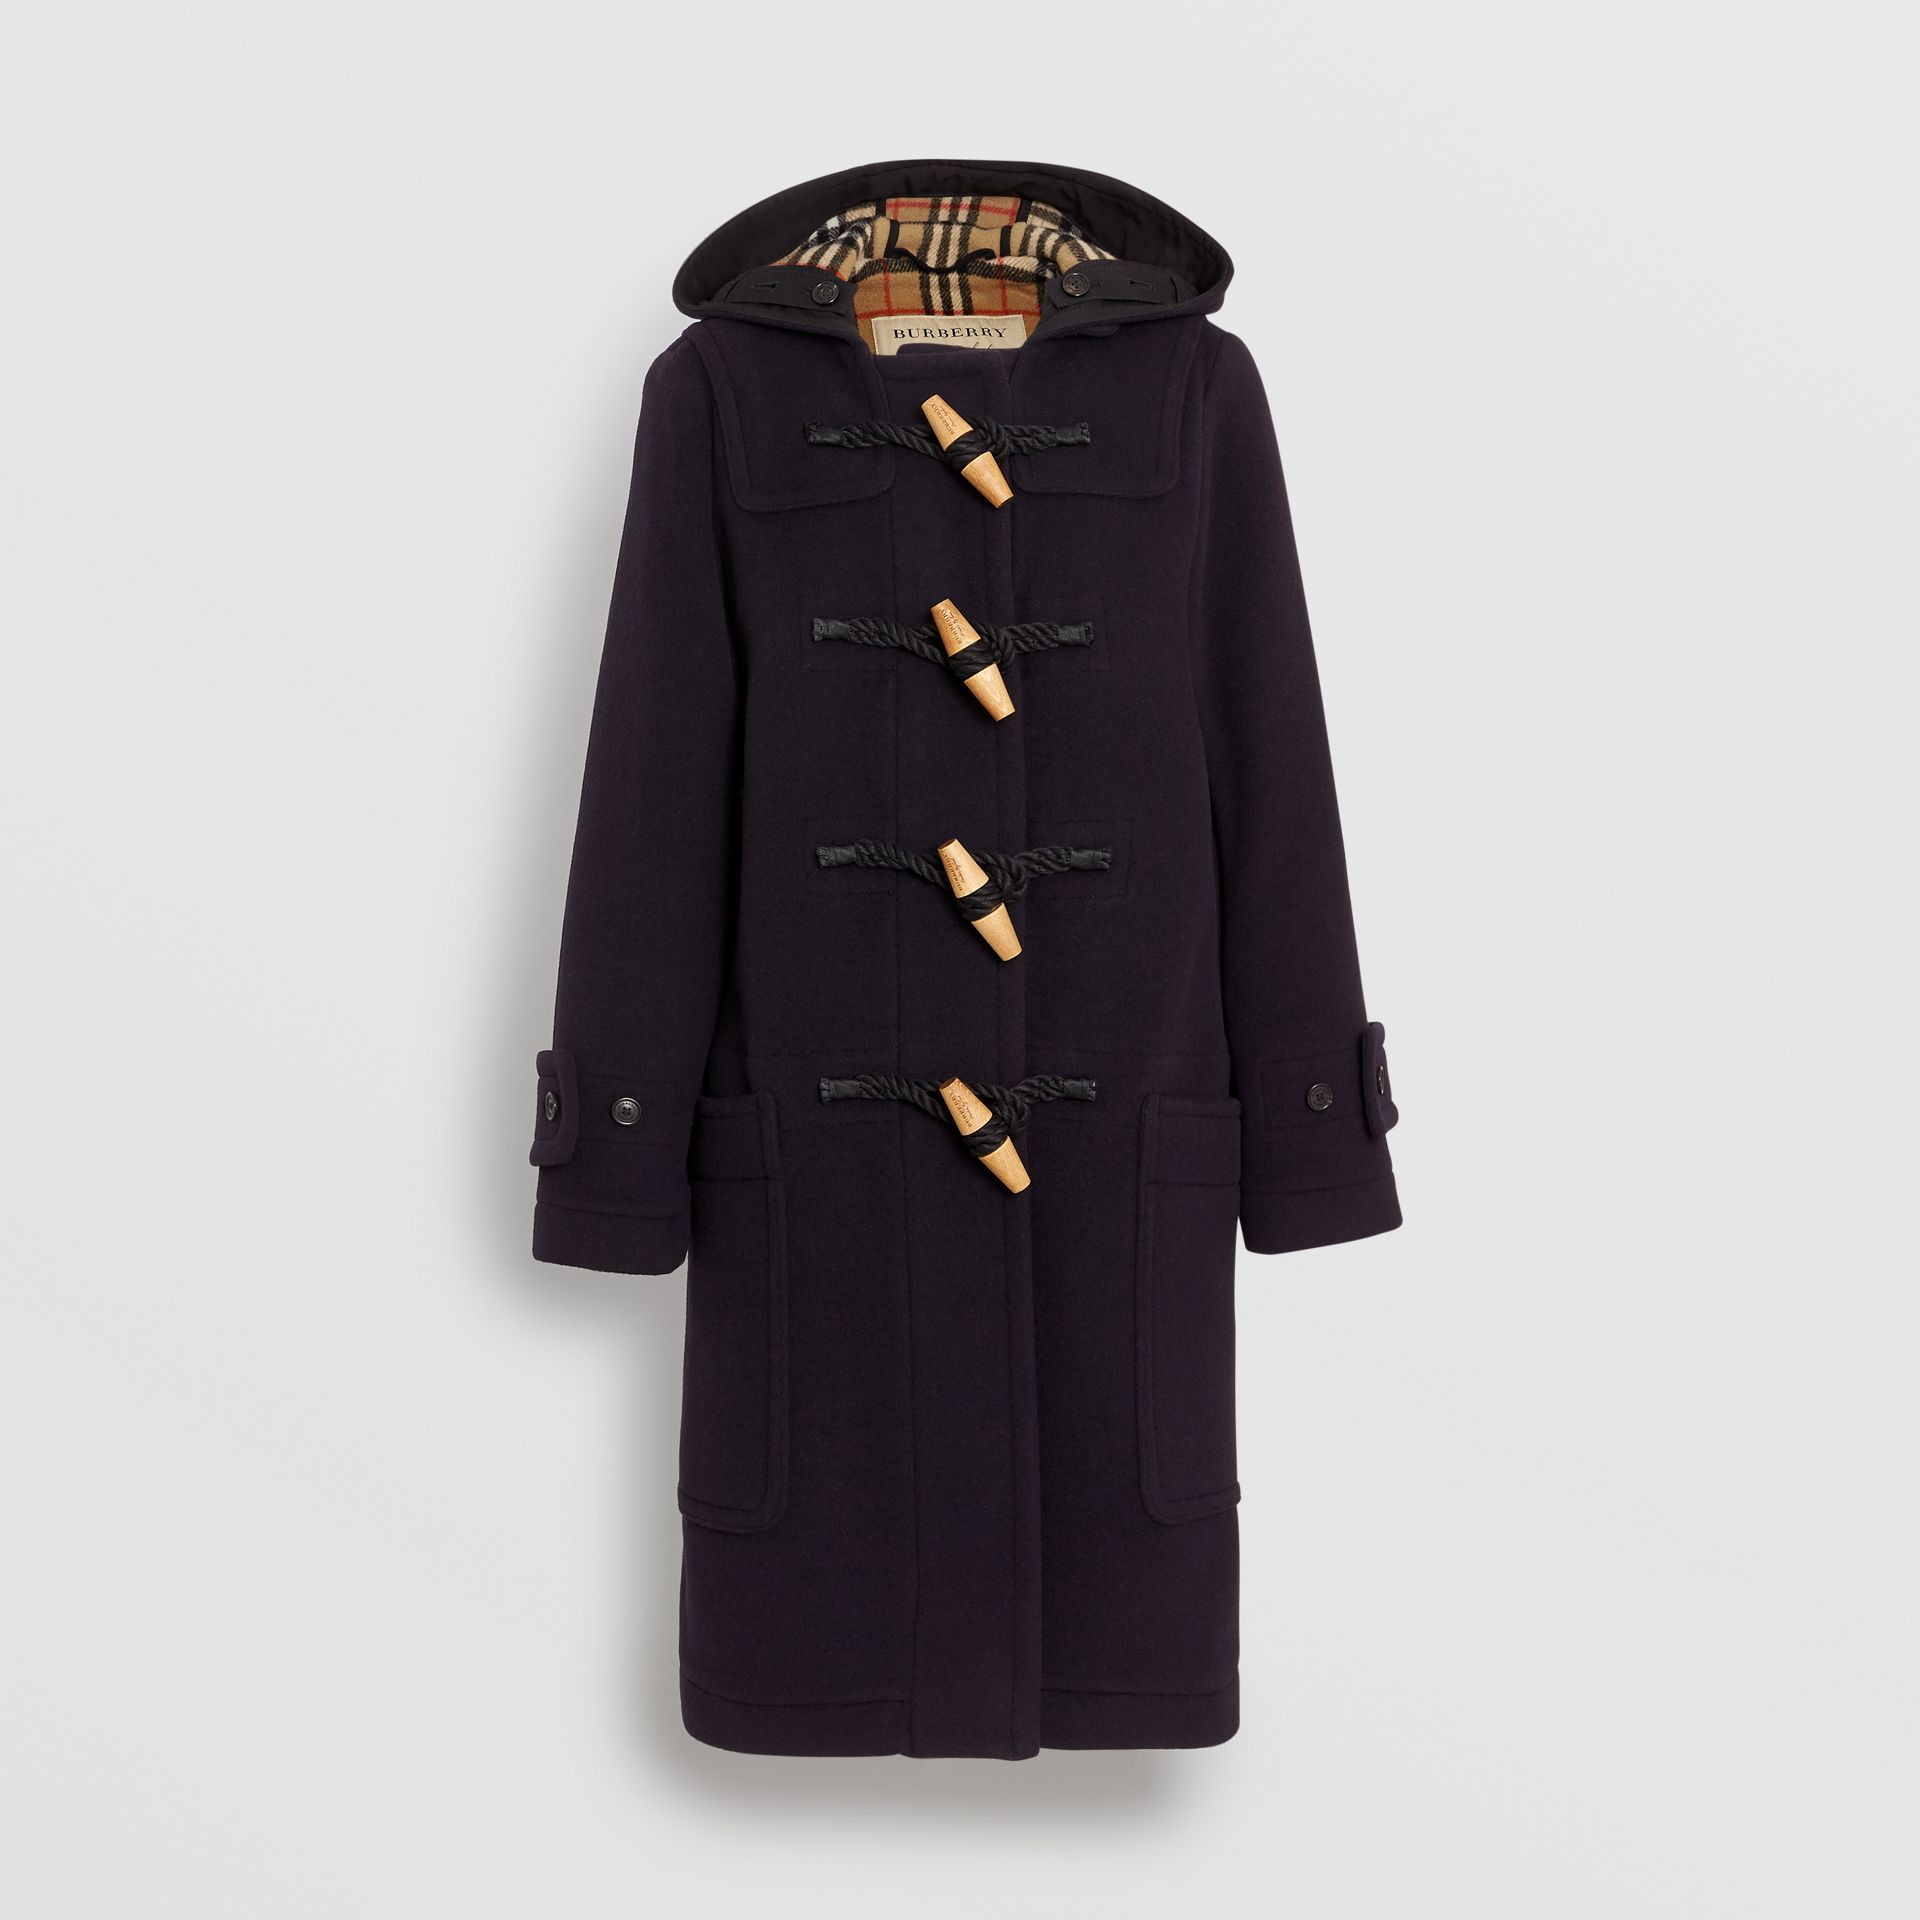 Wool Blend Oversized Duffle Coat in Navy - Women | Burberry United States - gallery image 6